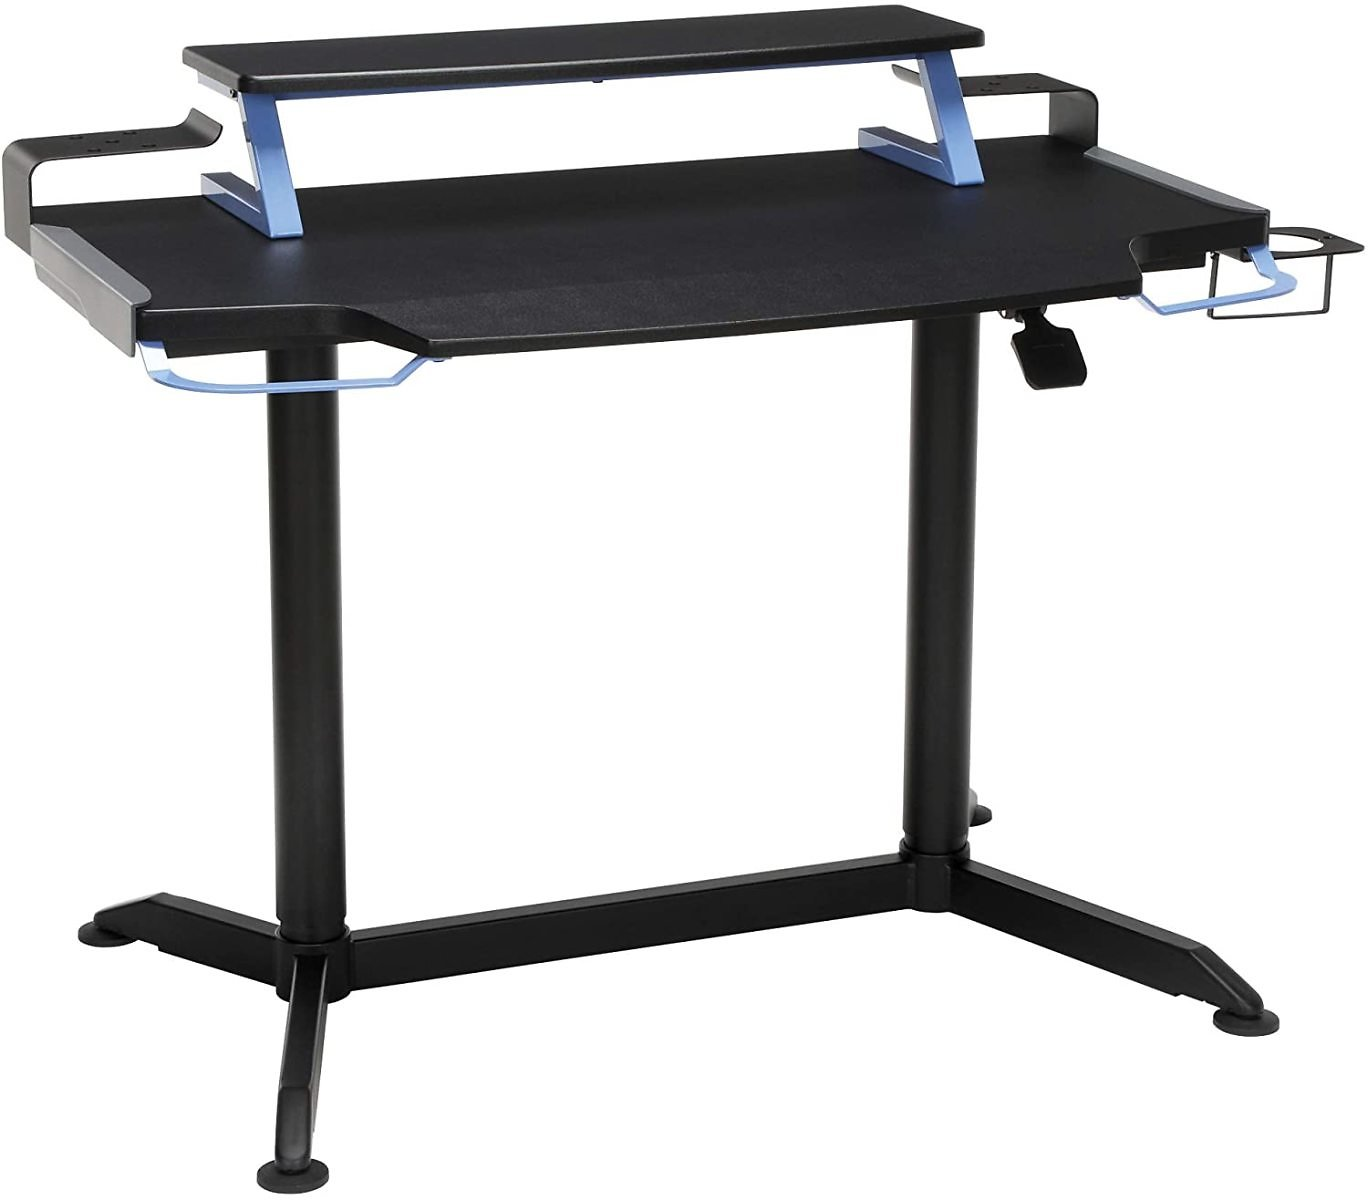 Respawn 3000 Height Adjustable Gaming Computer Desk for $239.98